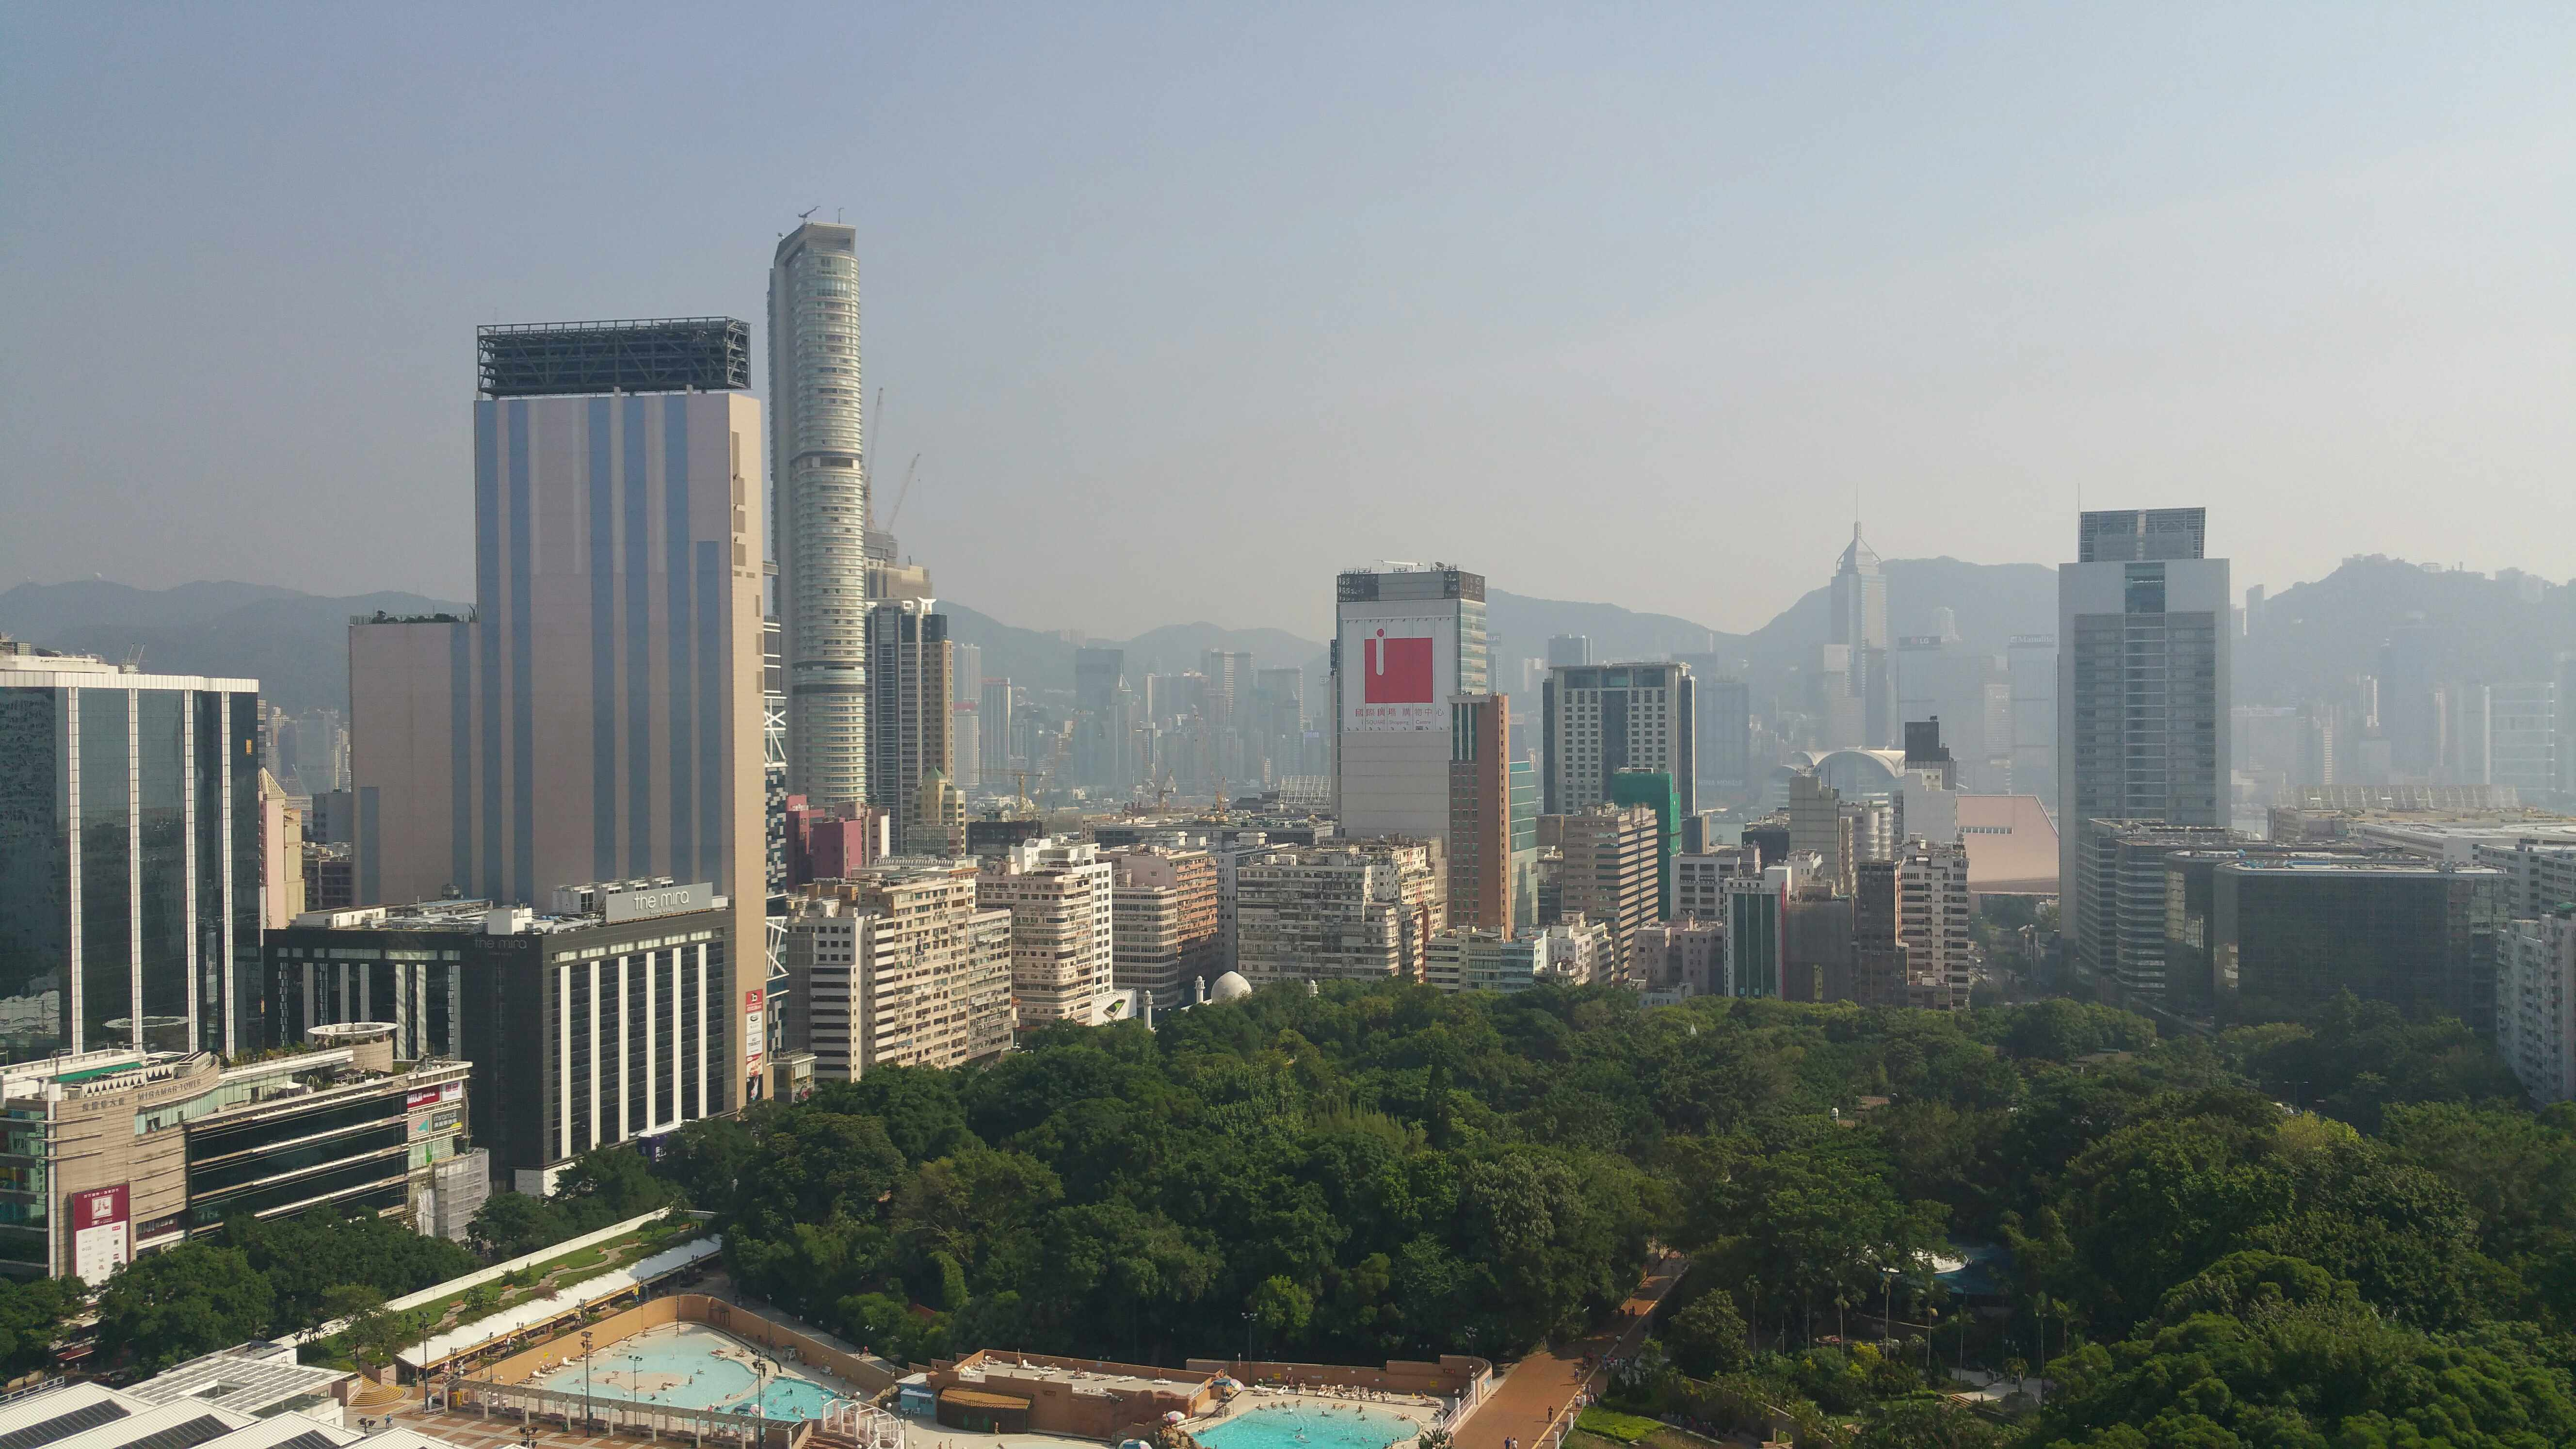 3Dponics Arrives to Hong Kong for 3D Printing Symposium